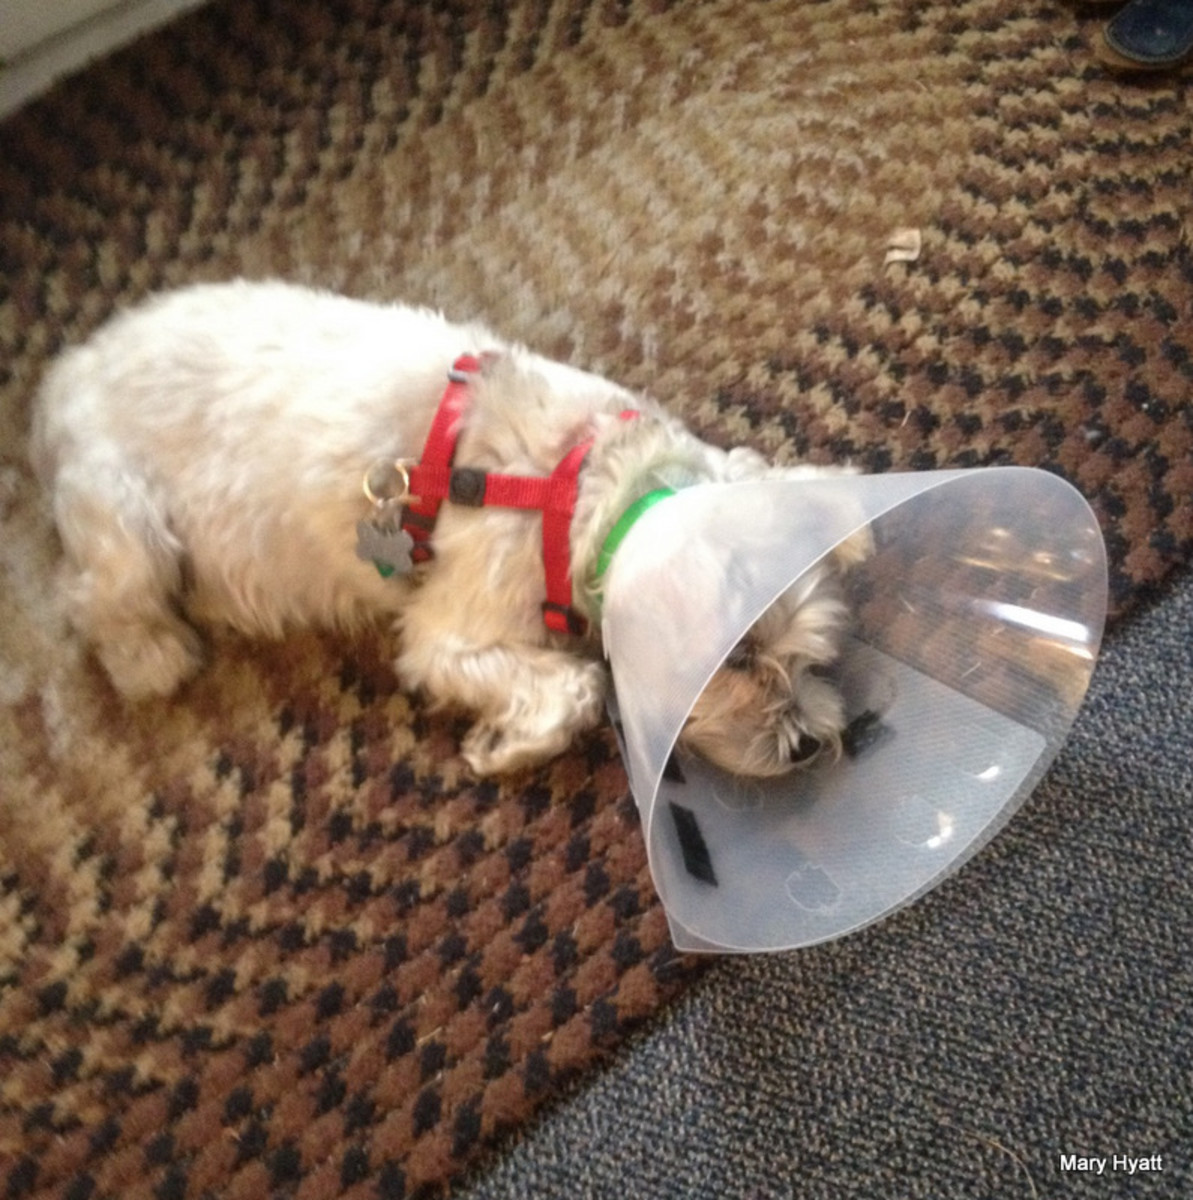 Baby must wear this cone until her checkup in two weeks.  It will protect her eye.